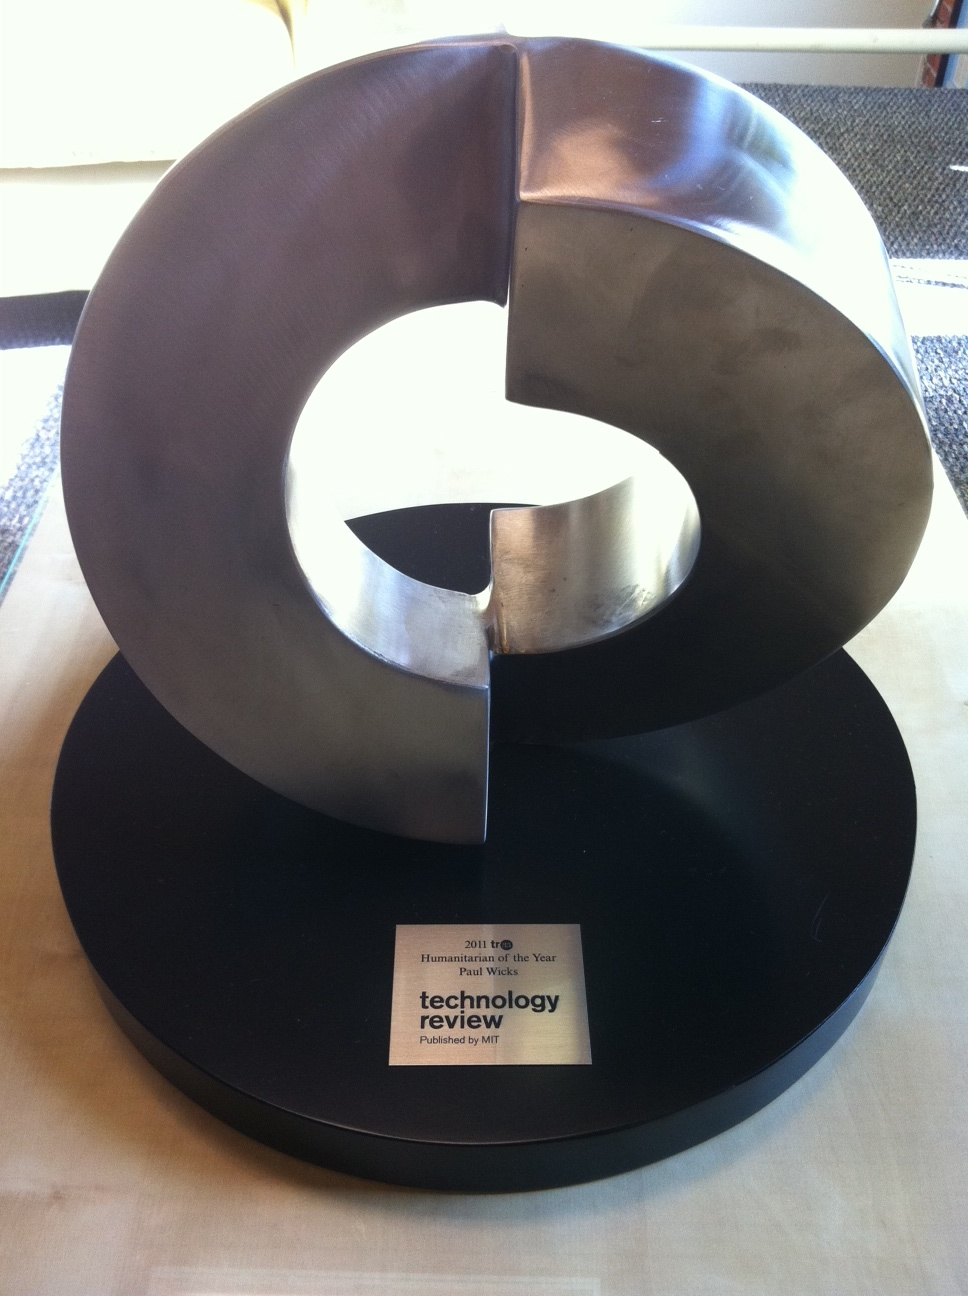 2011 Humanitarian of the Year Award Trophy Presented to Dr. Paul Wicks, PhD